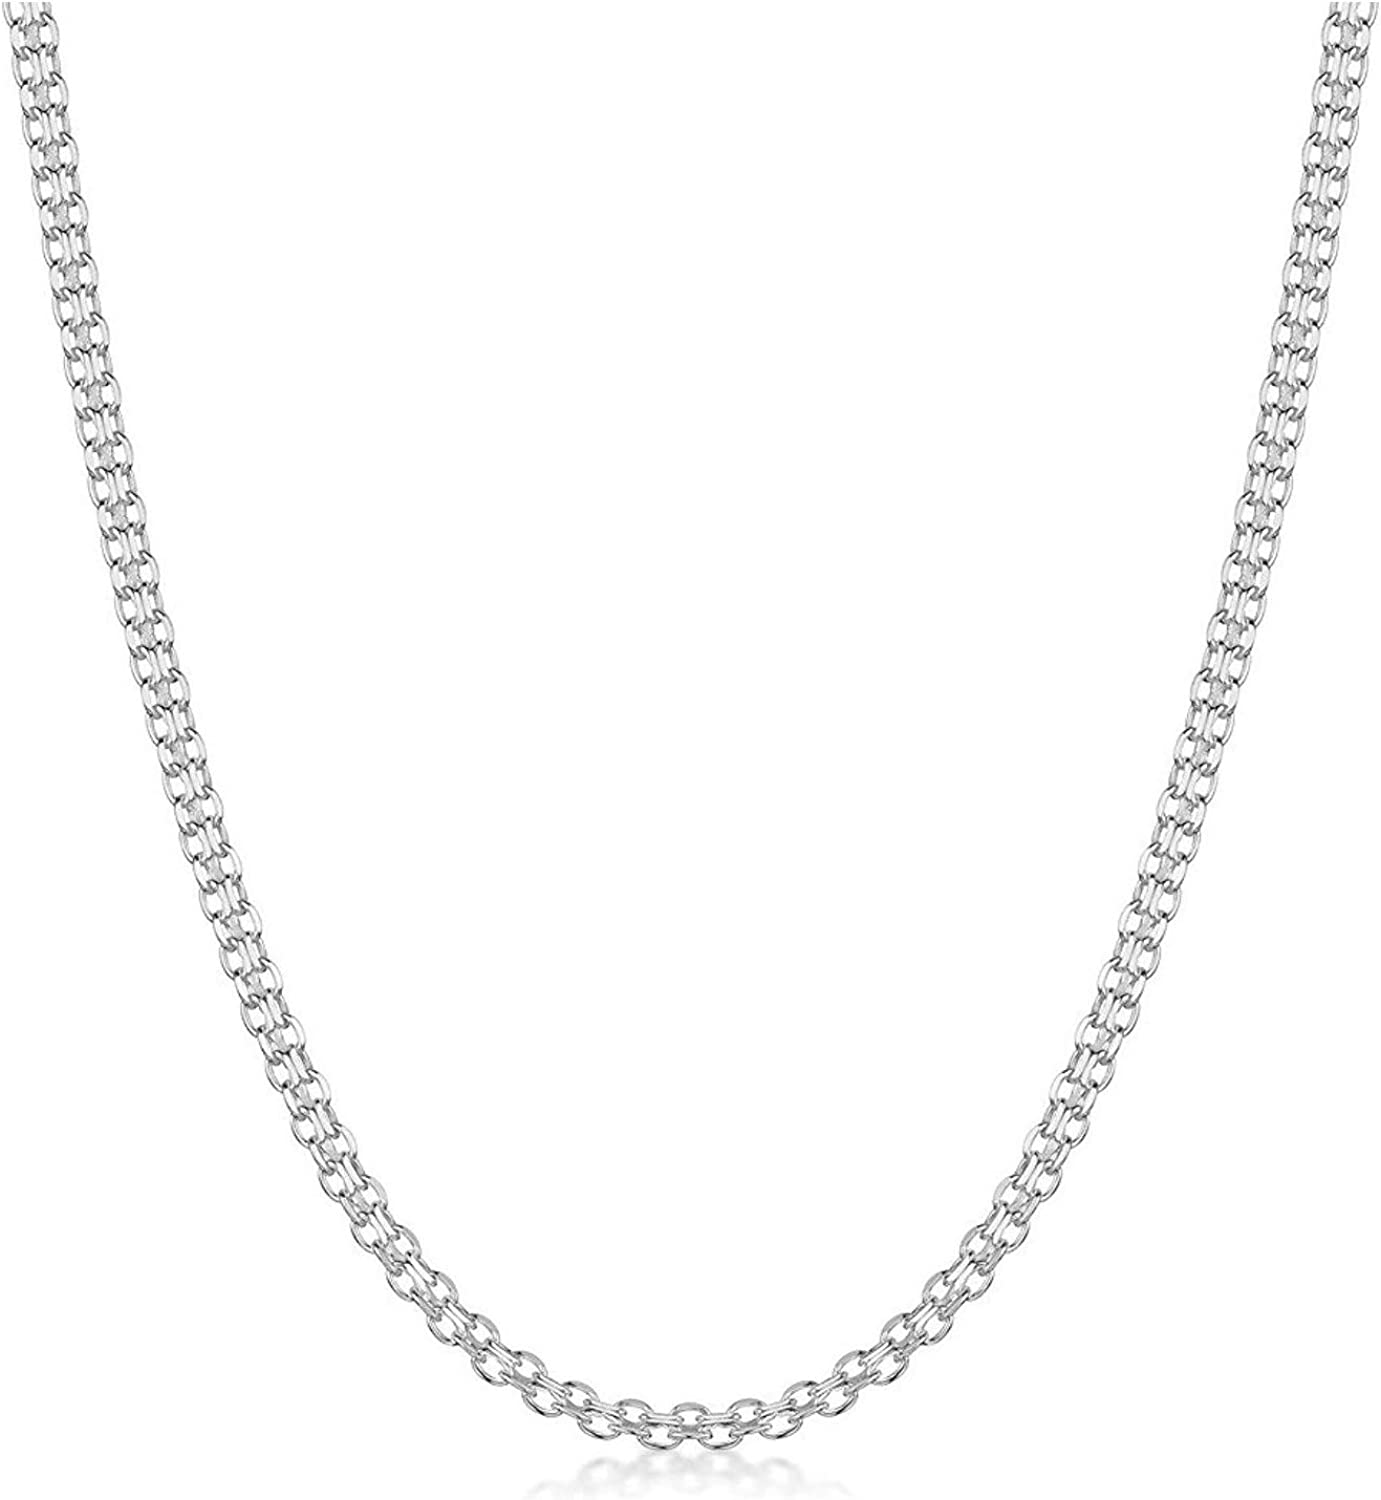 Pori Jewelers .925 Sterling Silver Italian Bismark Chain Necklace - Available in 1.8mm, 2.2mm, 3mm - Made in Italy - Multiple Lengths Available